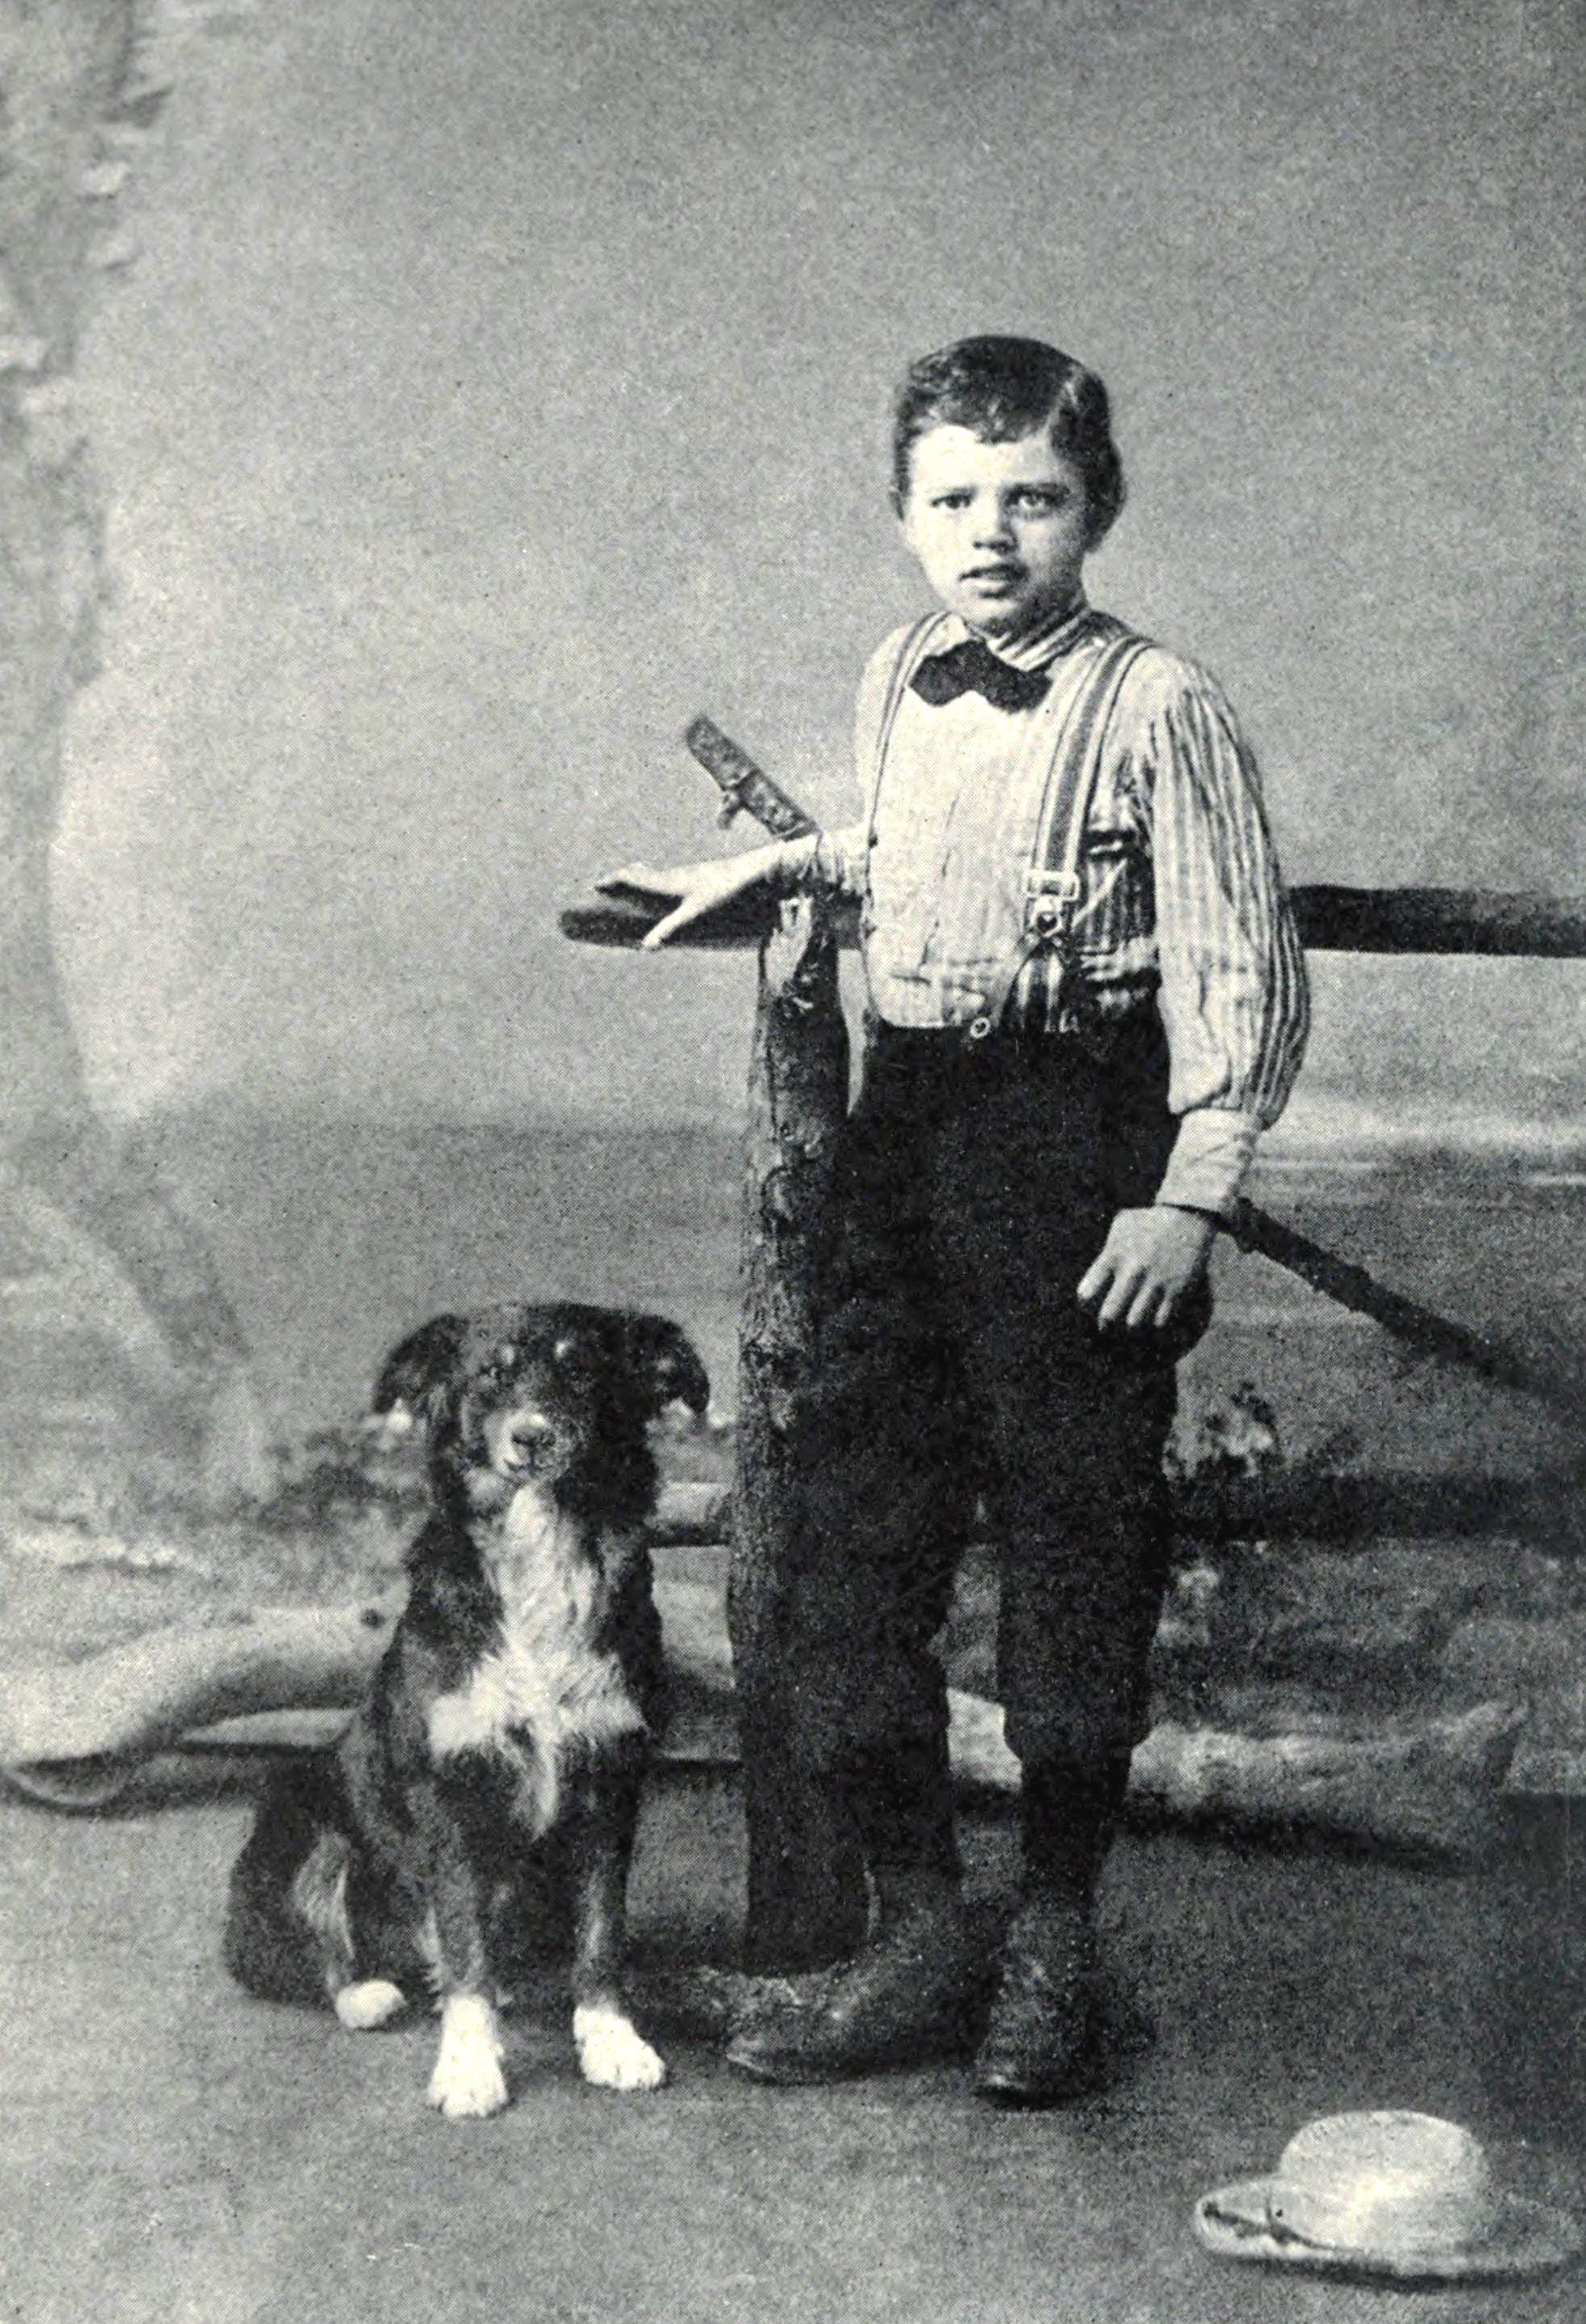 Jack London and his dog Rollo. Nine years old, 1885.